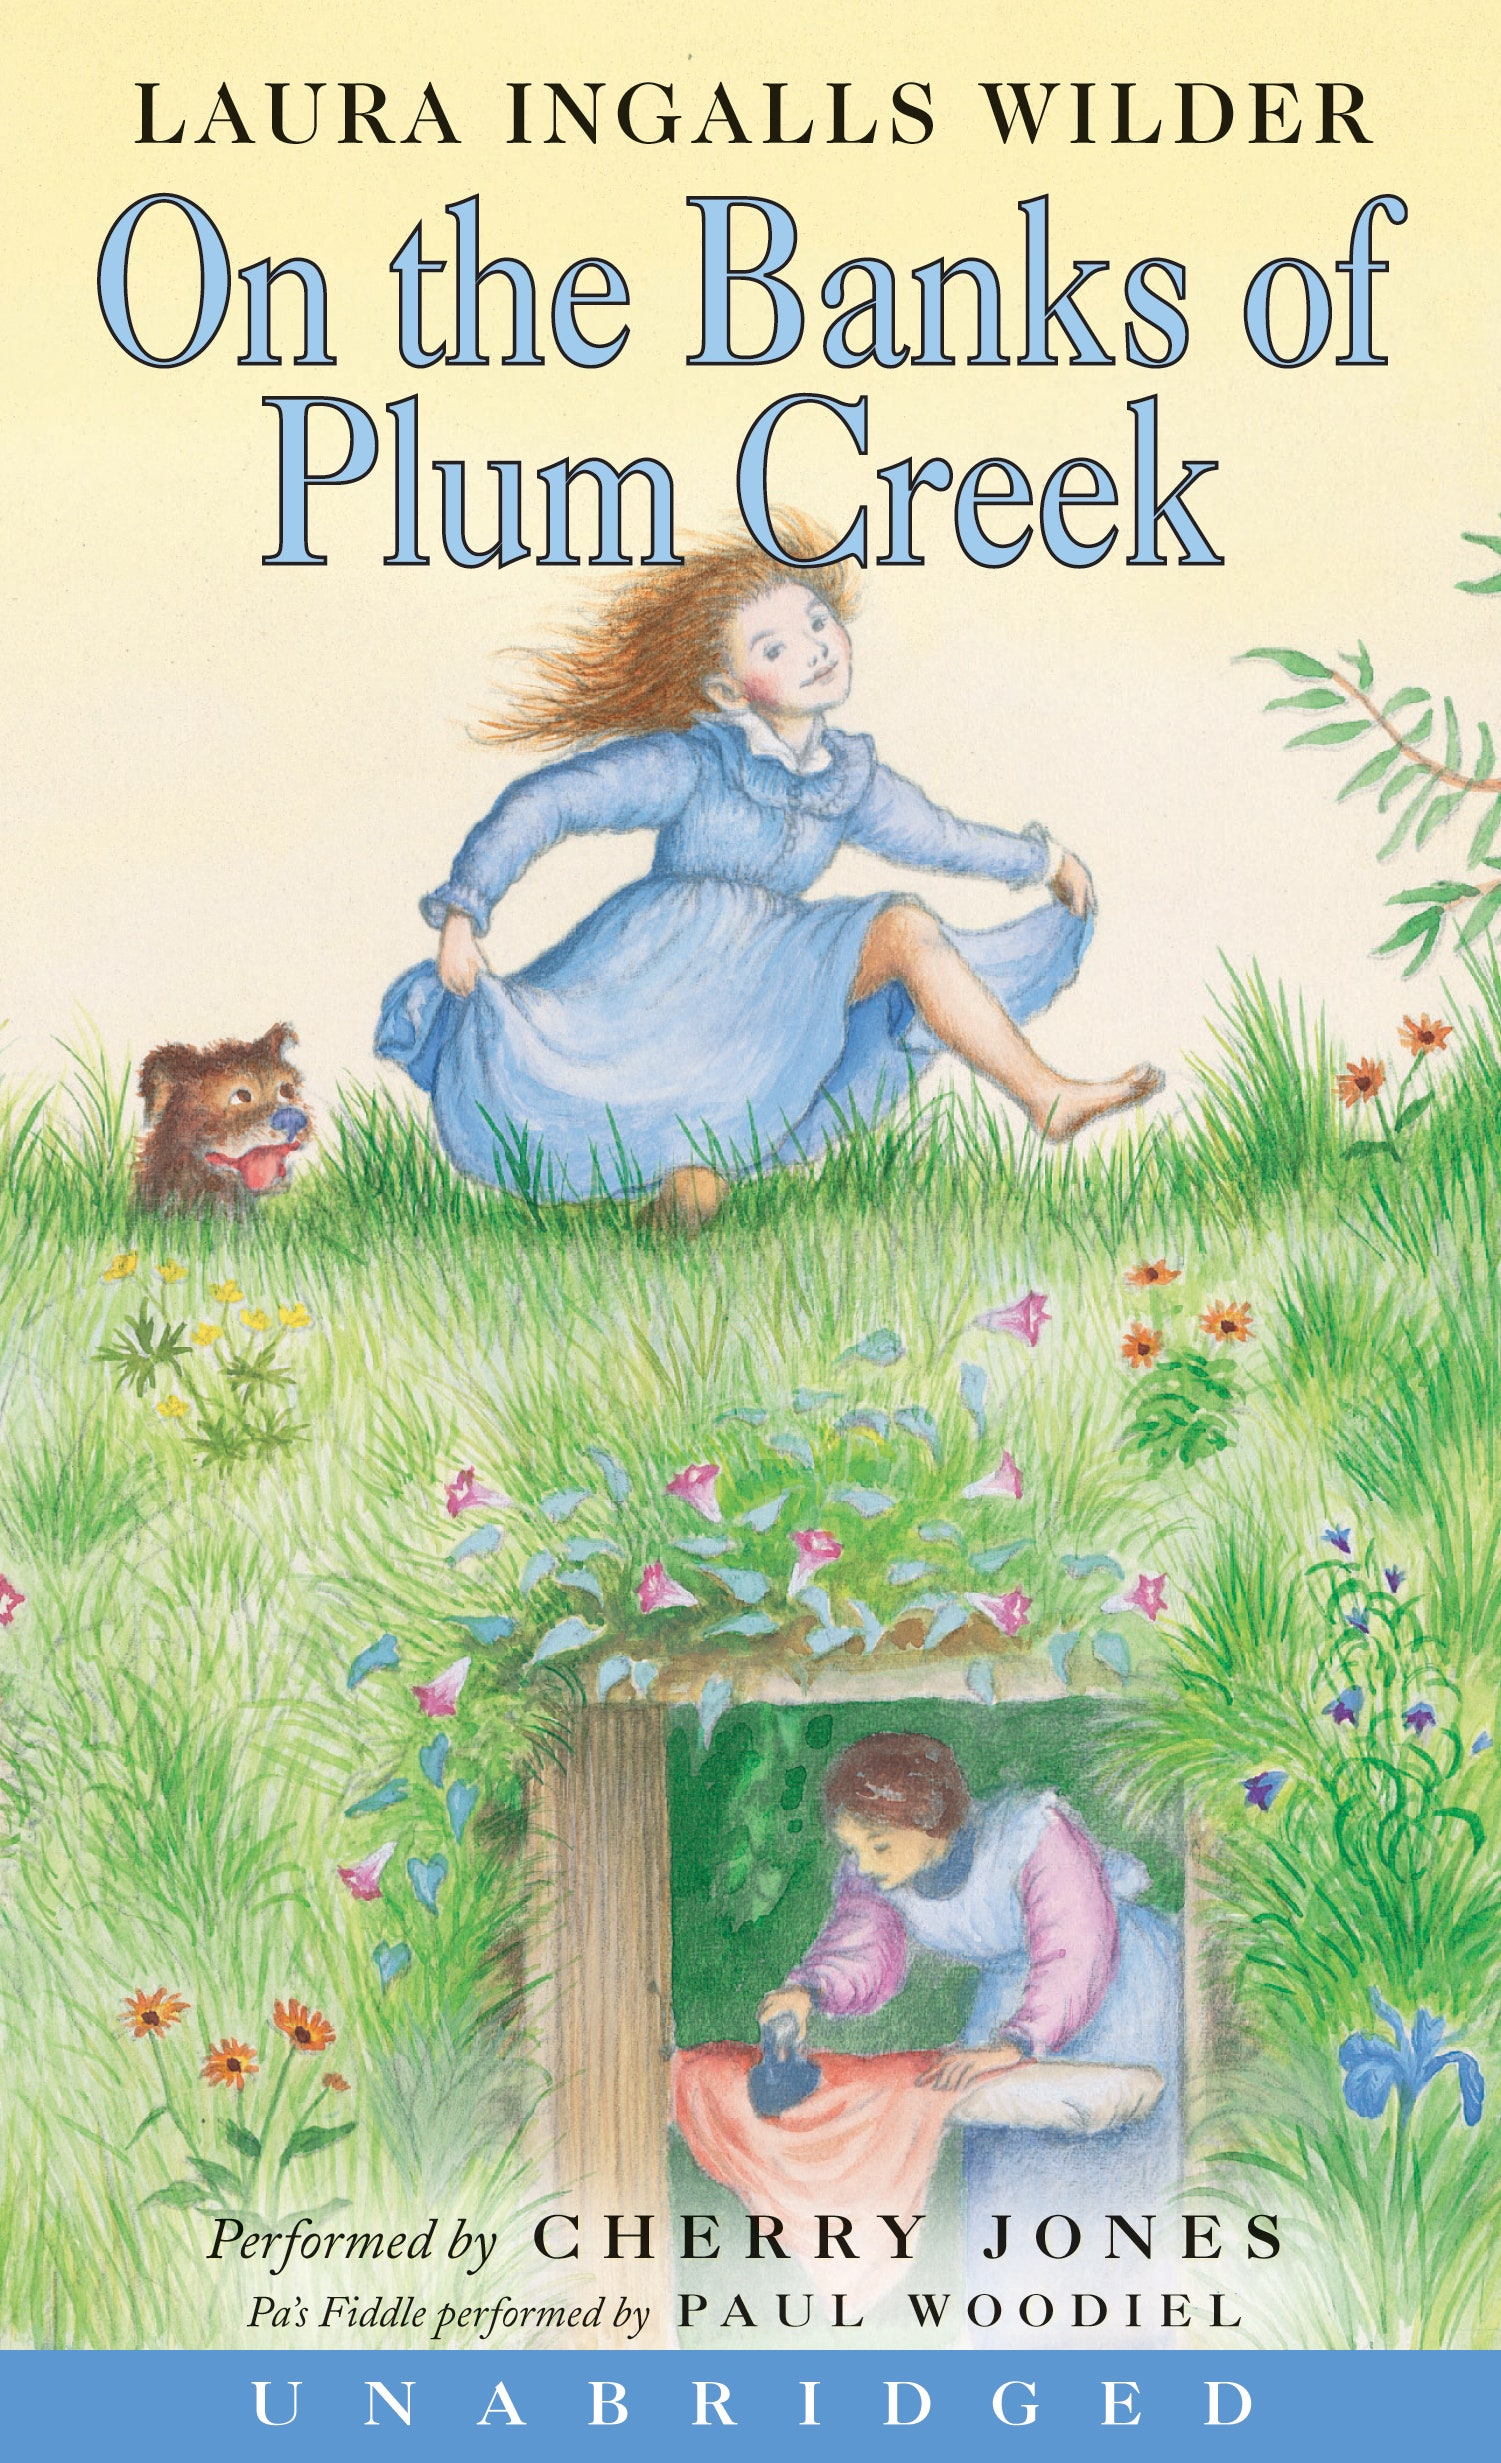 On the Banks of Plum Creek, cover by Garth Williams